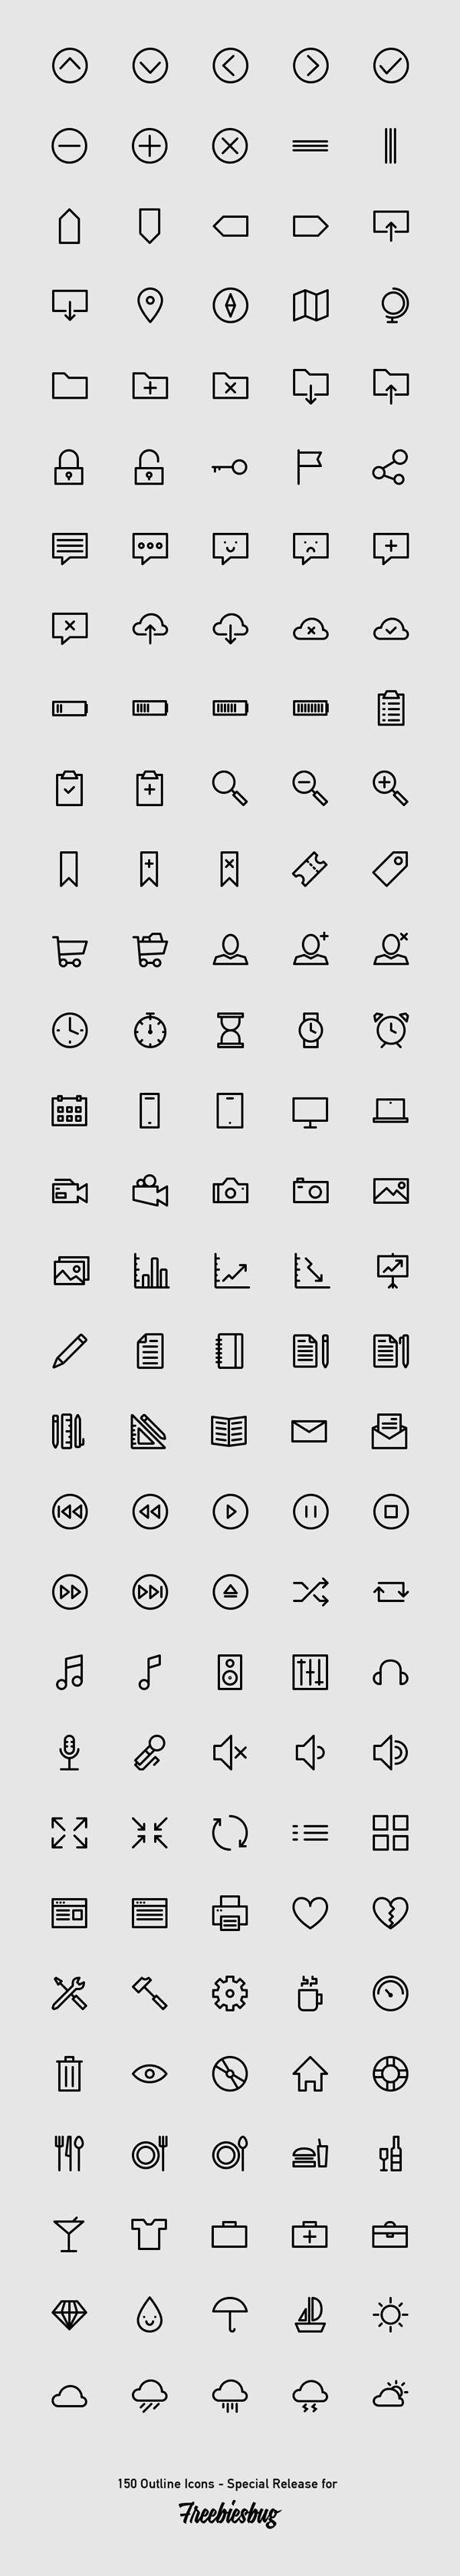 150 Outlined Icons | GraphicBurger